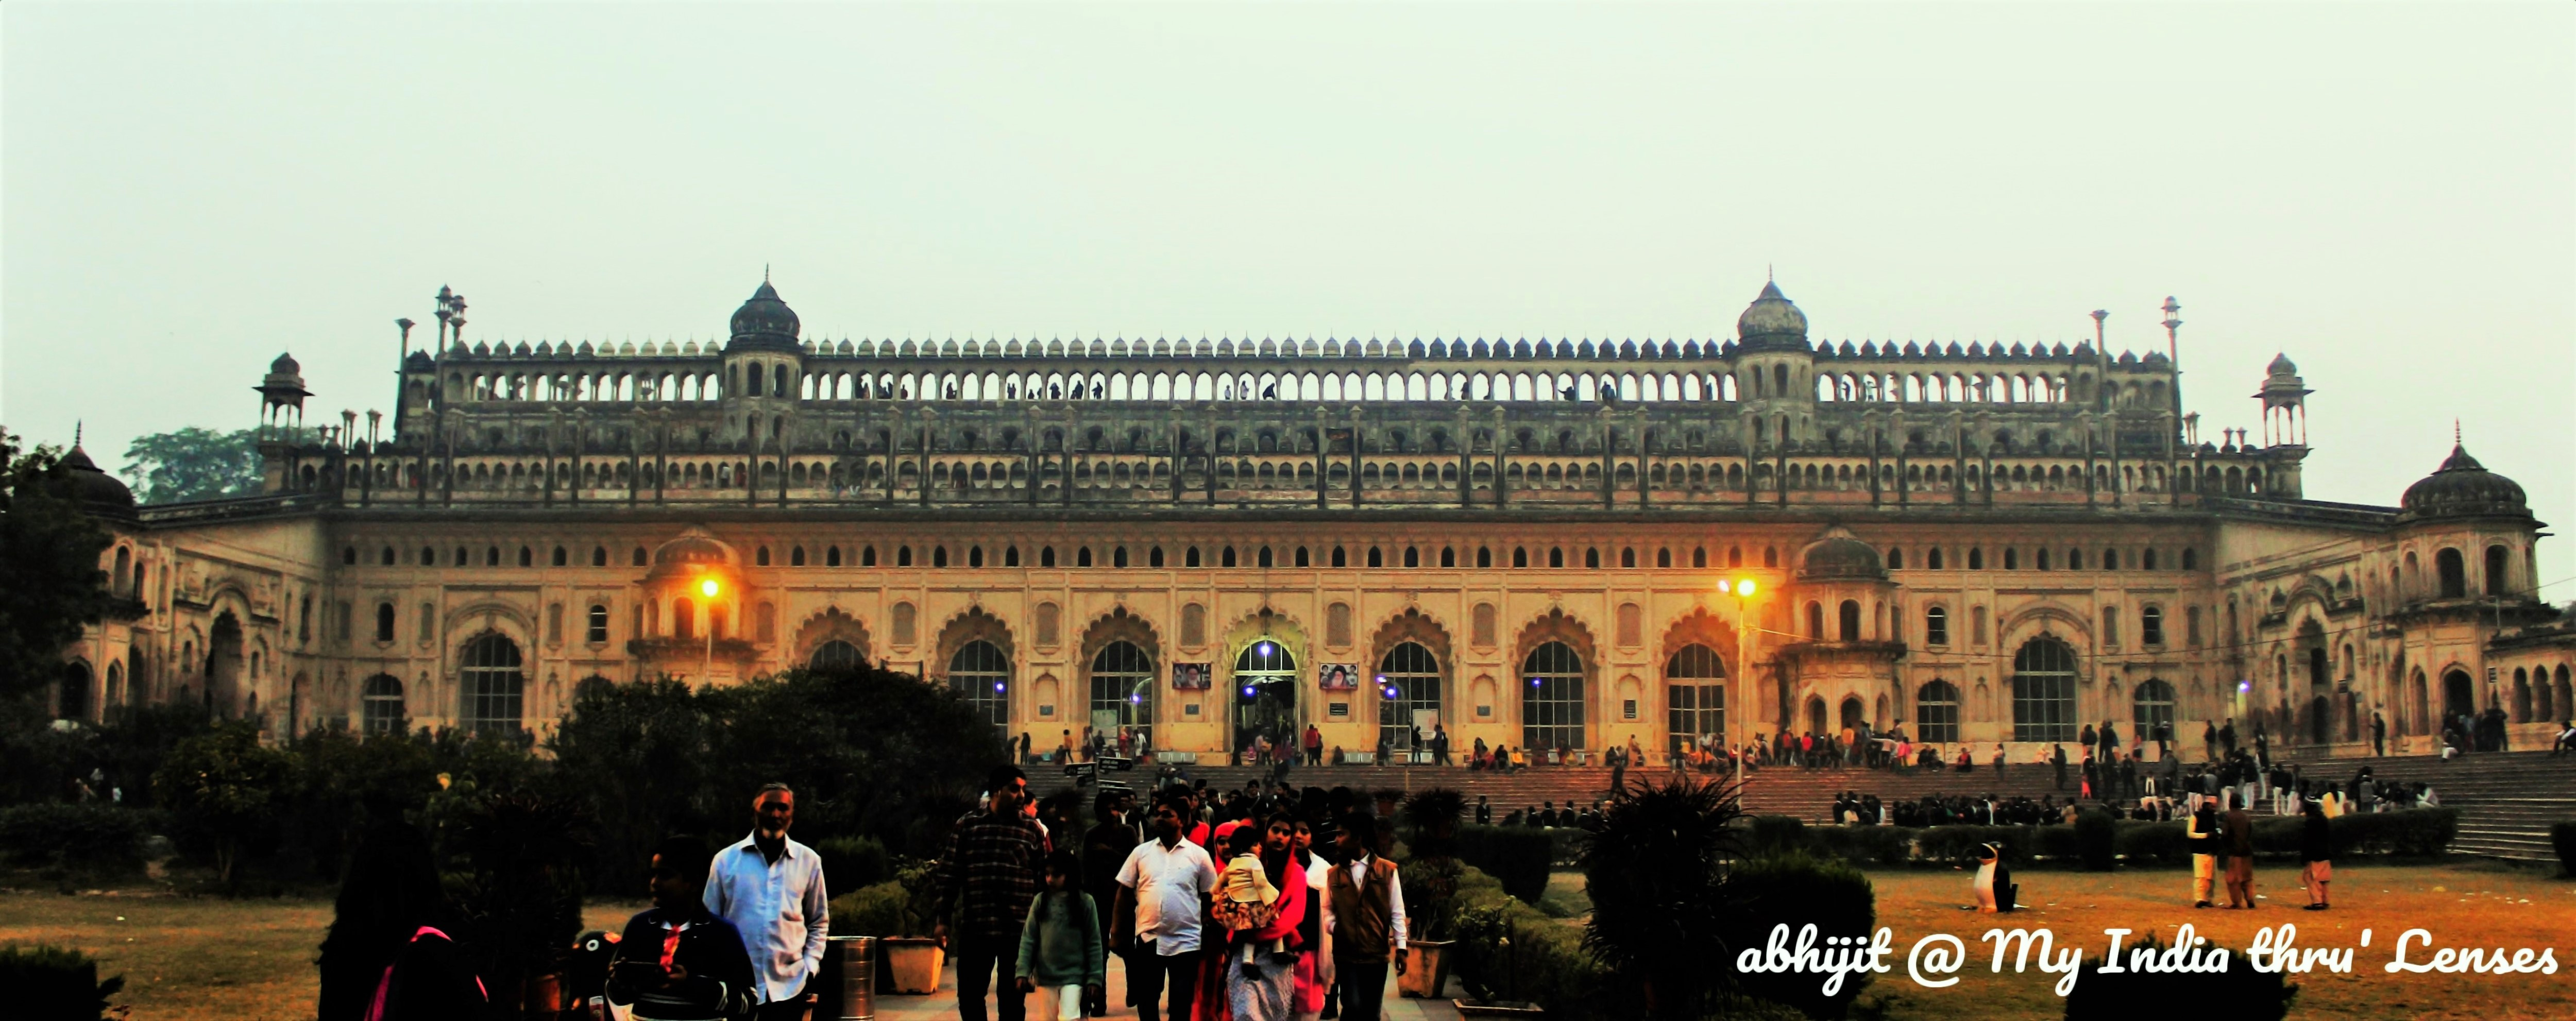 The Bara Imambara, Lucknow